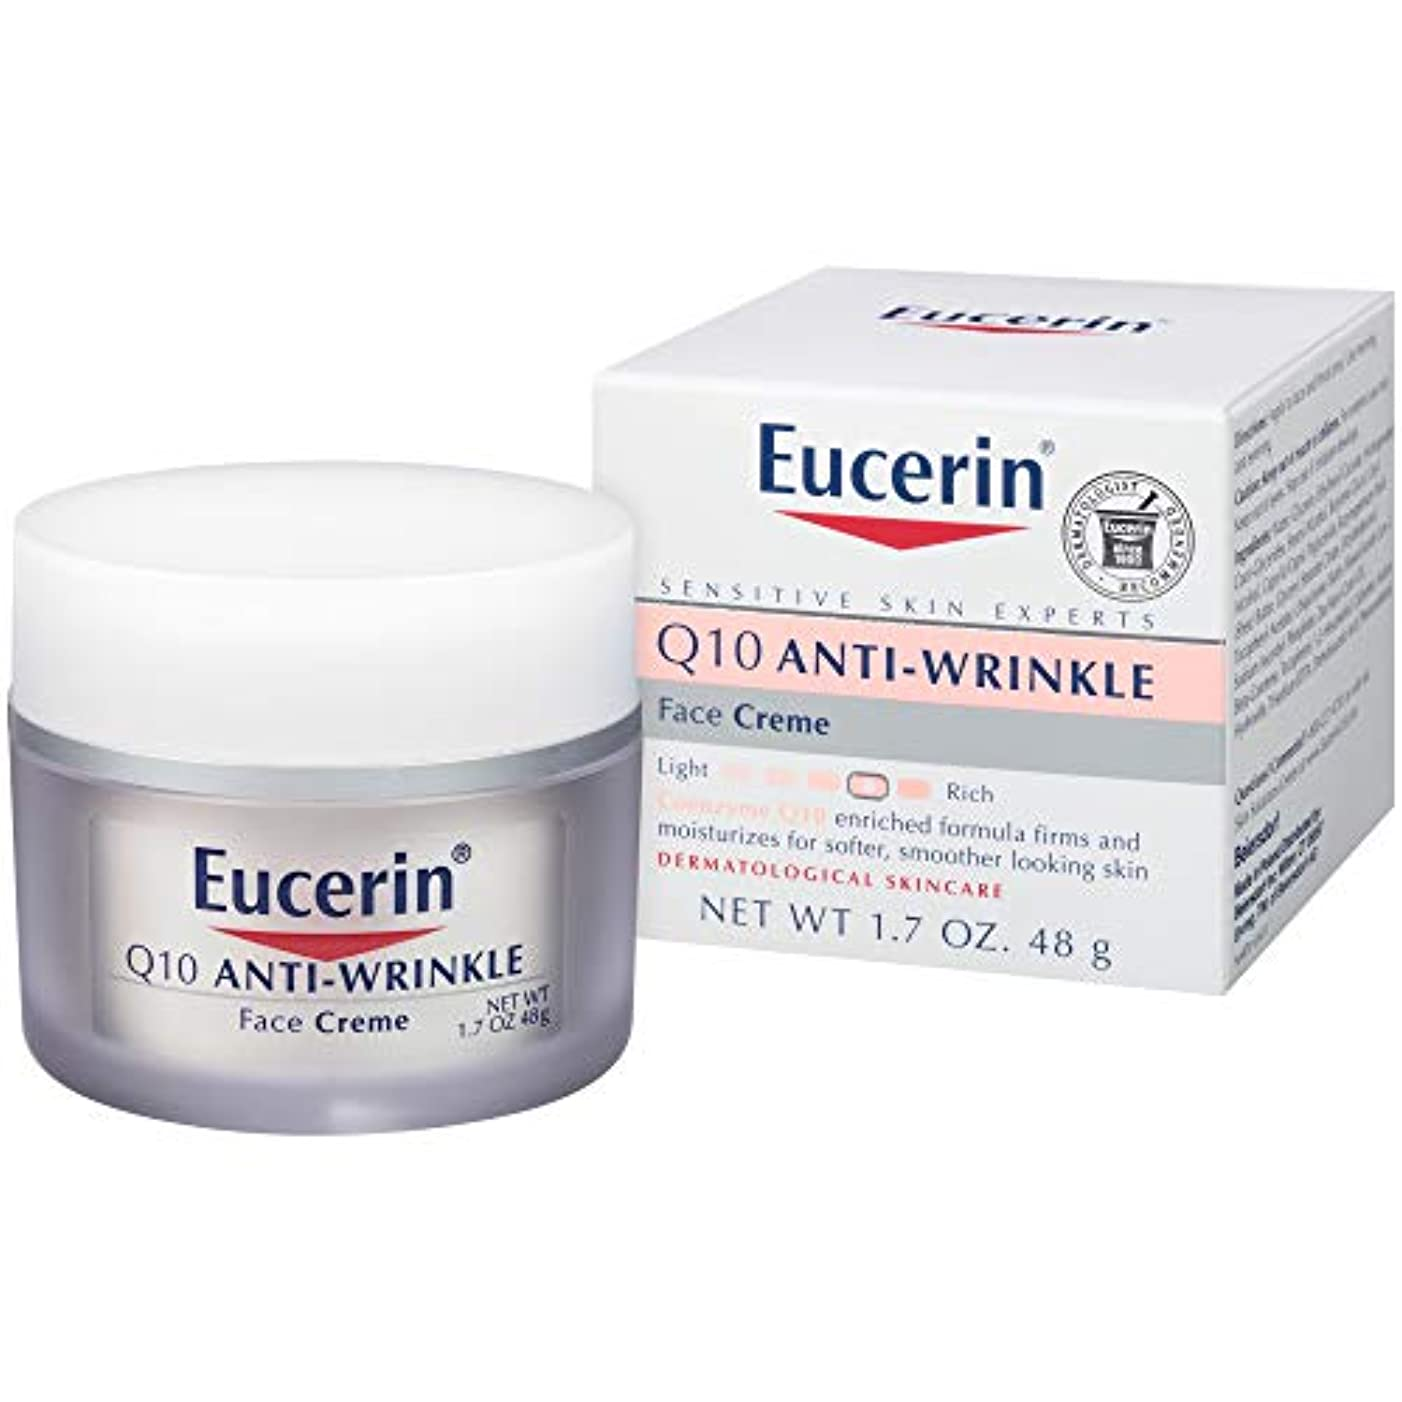 ポップきちんとした細菌Eucerin Sensitive Facial Skin Q10 Anti-Wrinkle Sensitive Skin Creme 48g (並行輸入品)